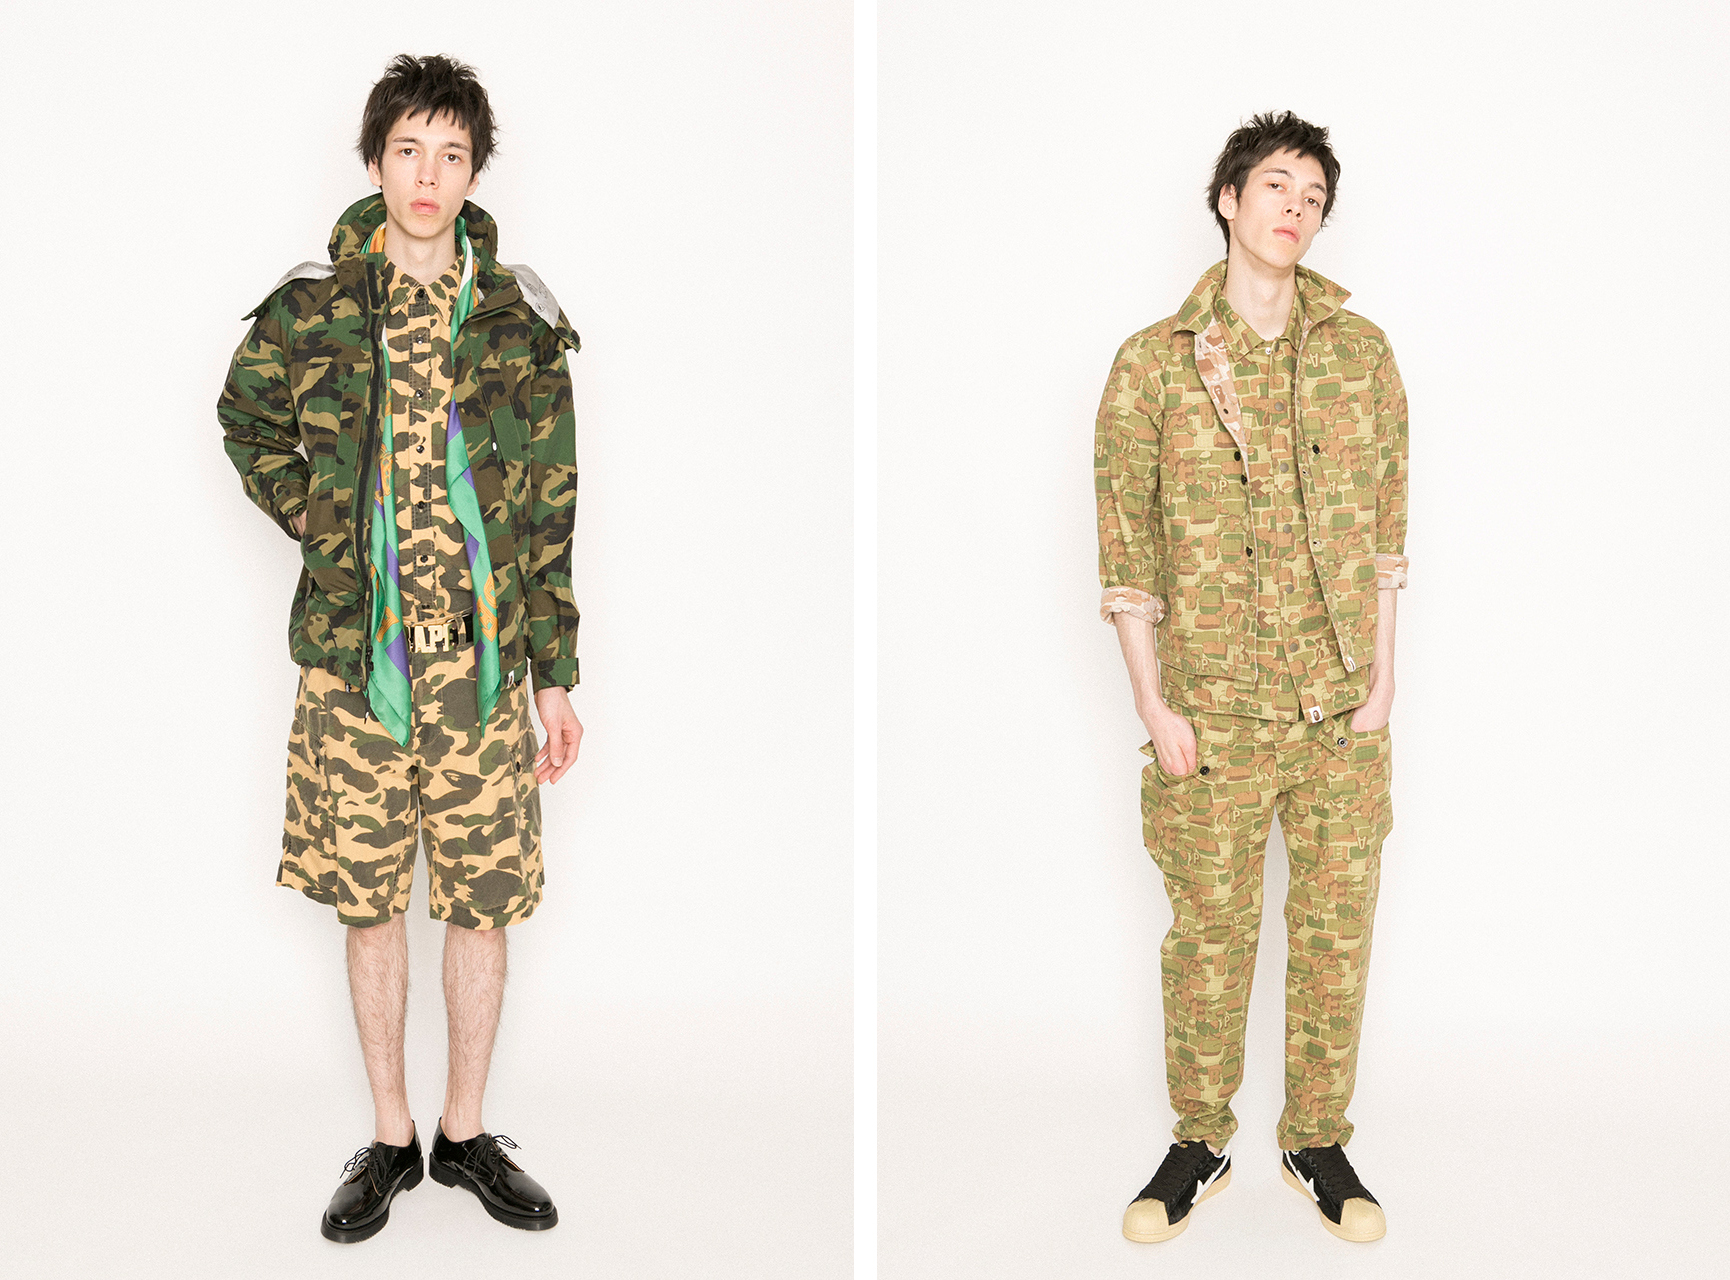 Bathing Ape 2013 S/S collection